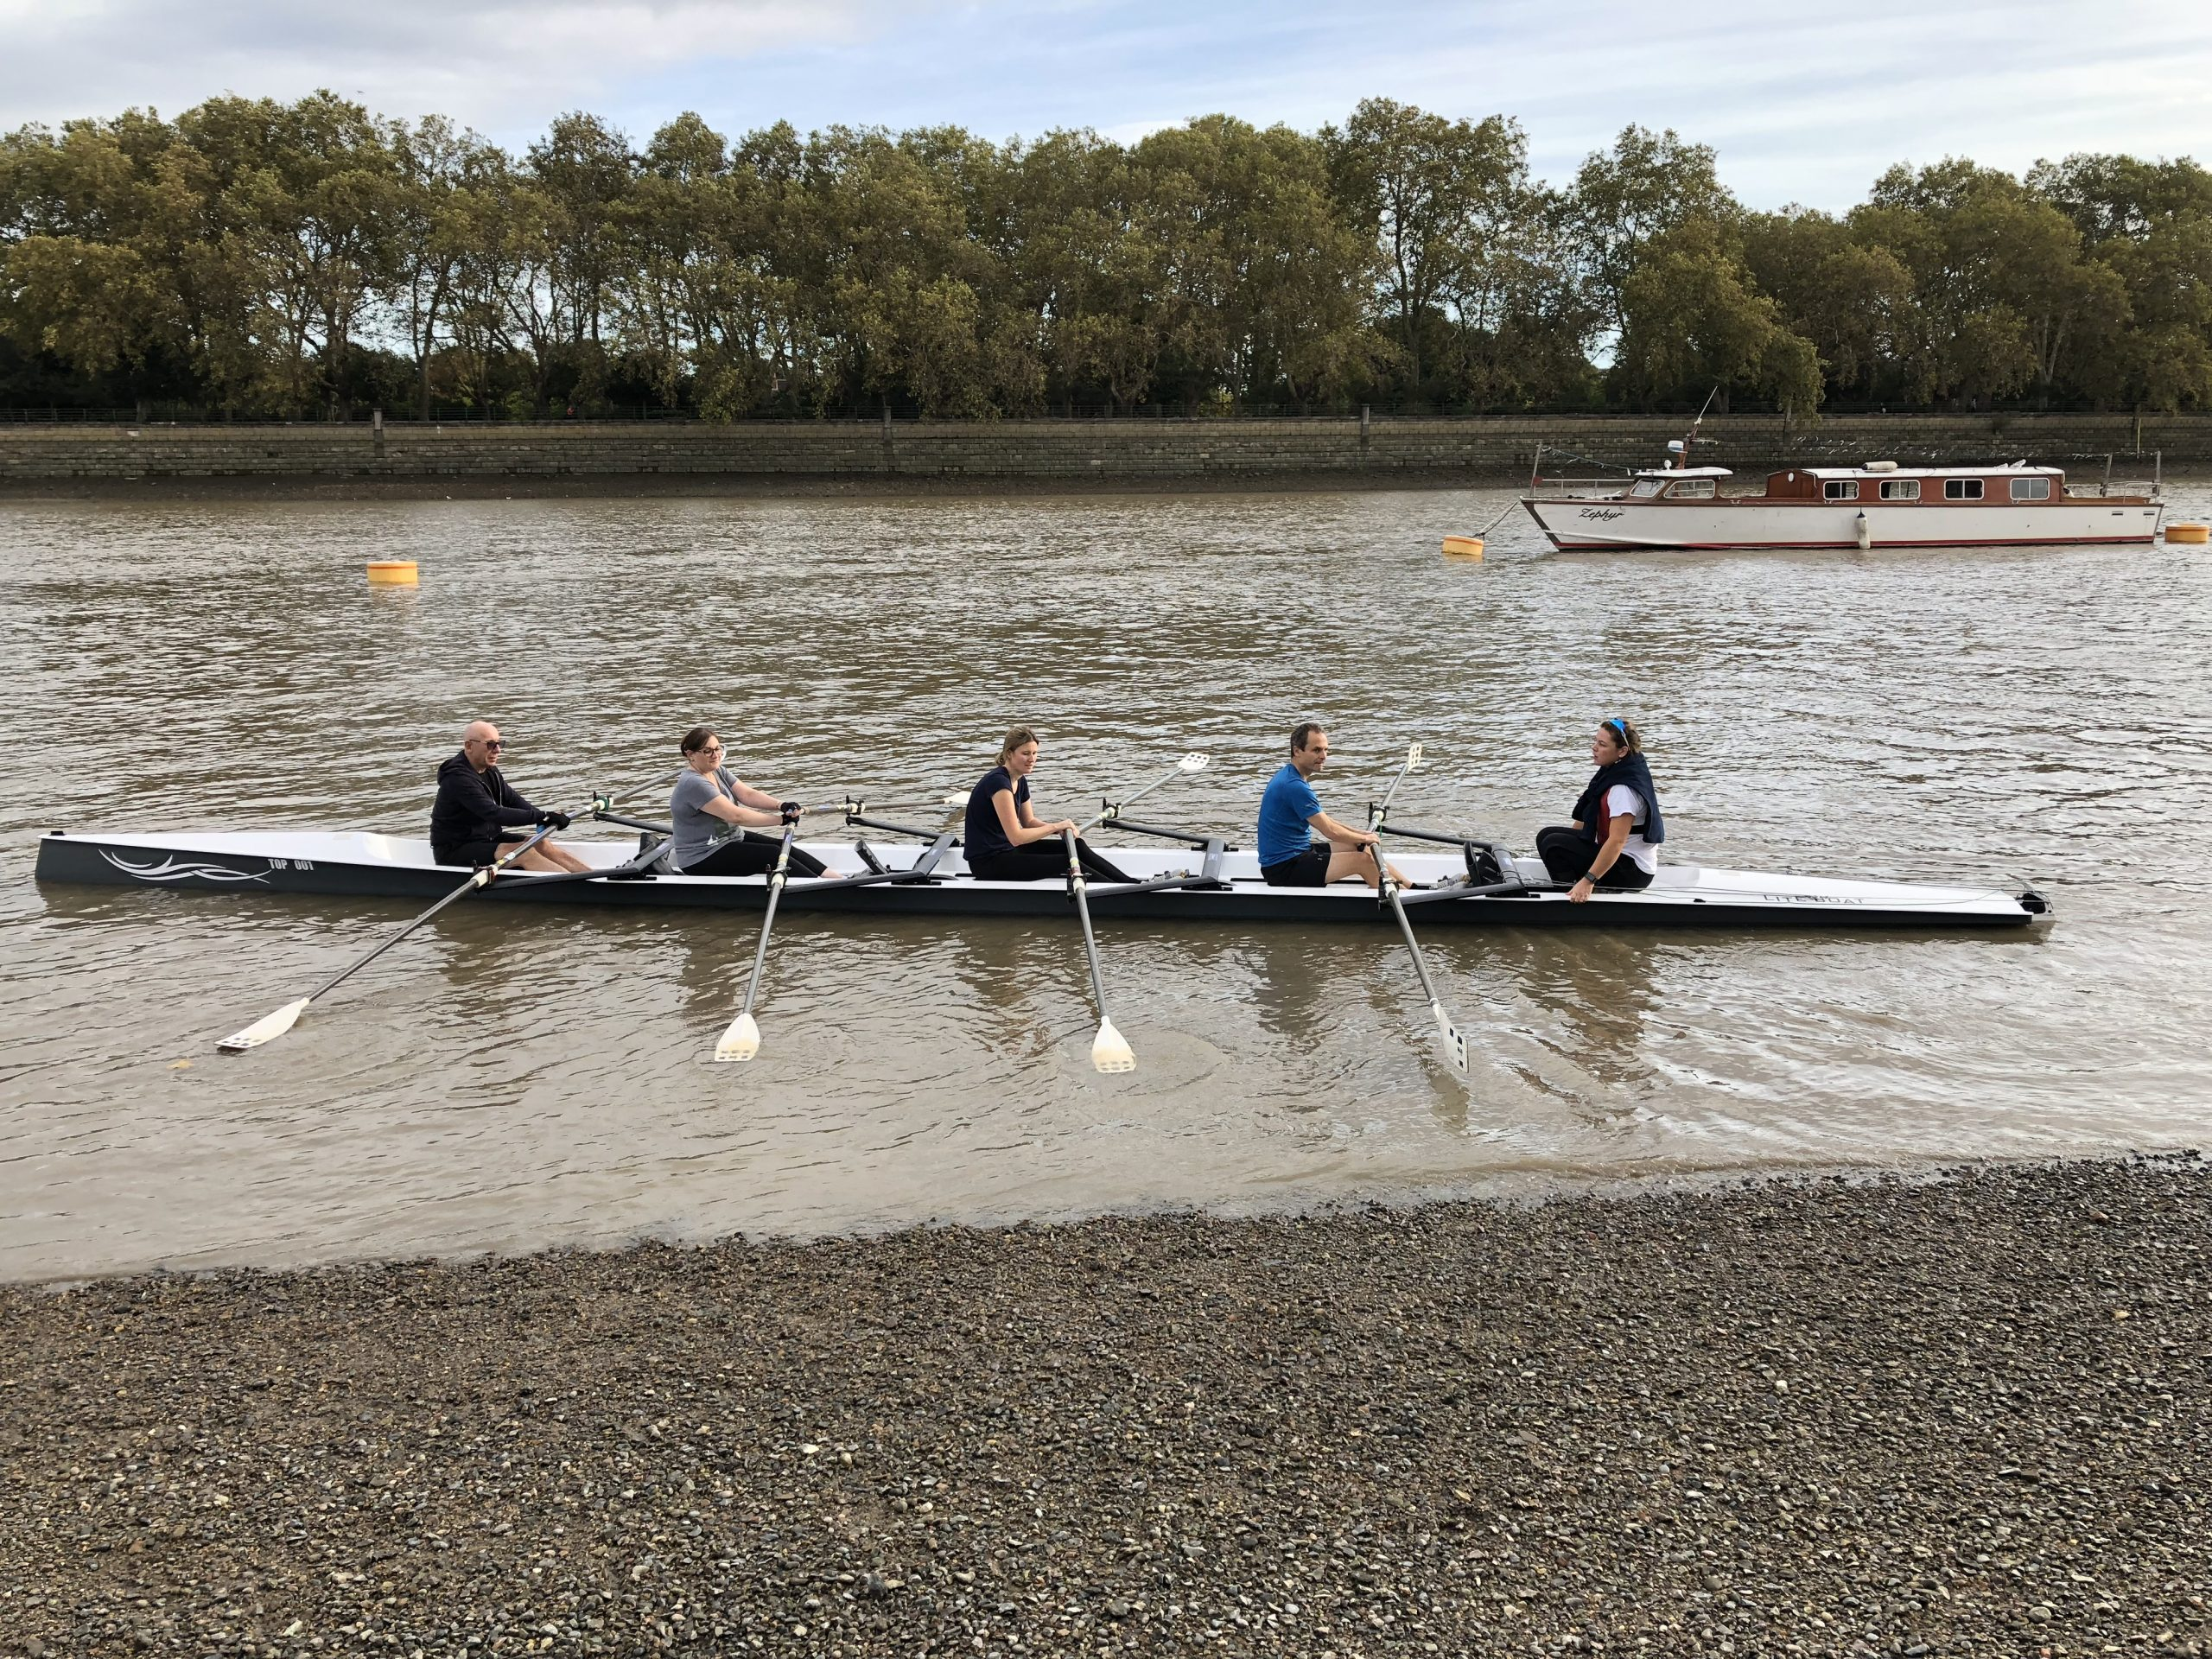 Row row row your boat in London!